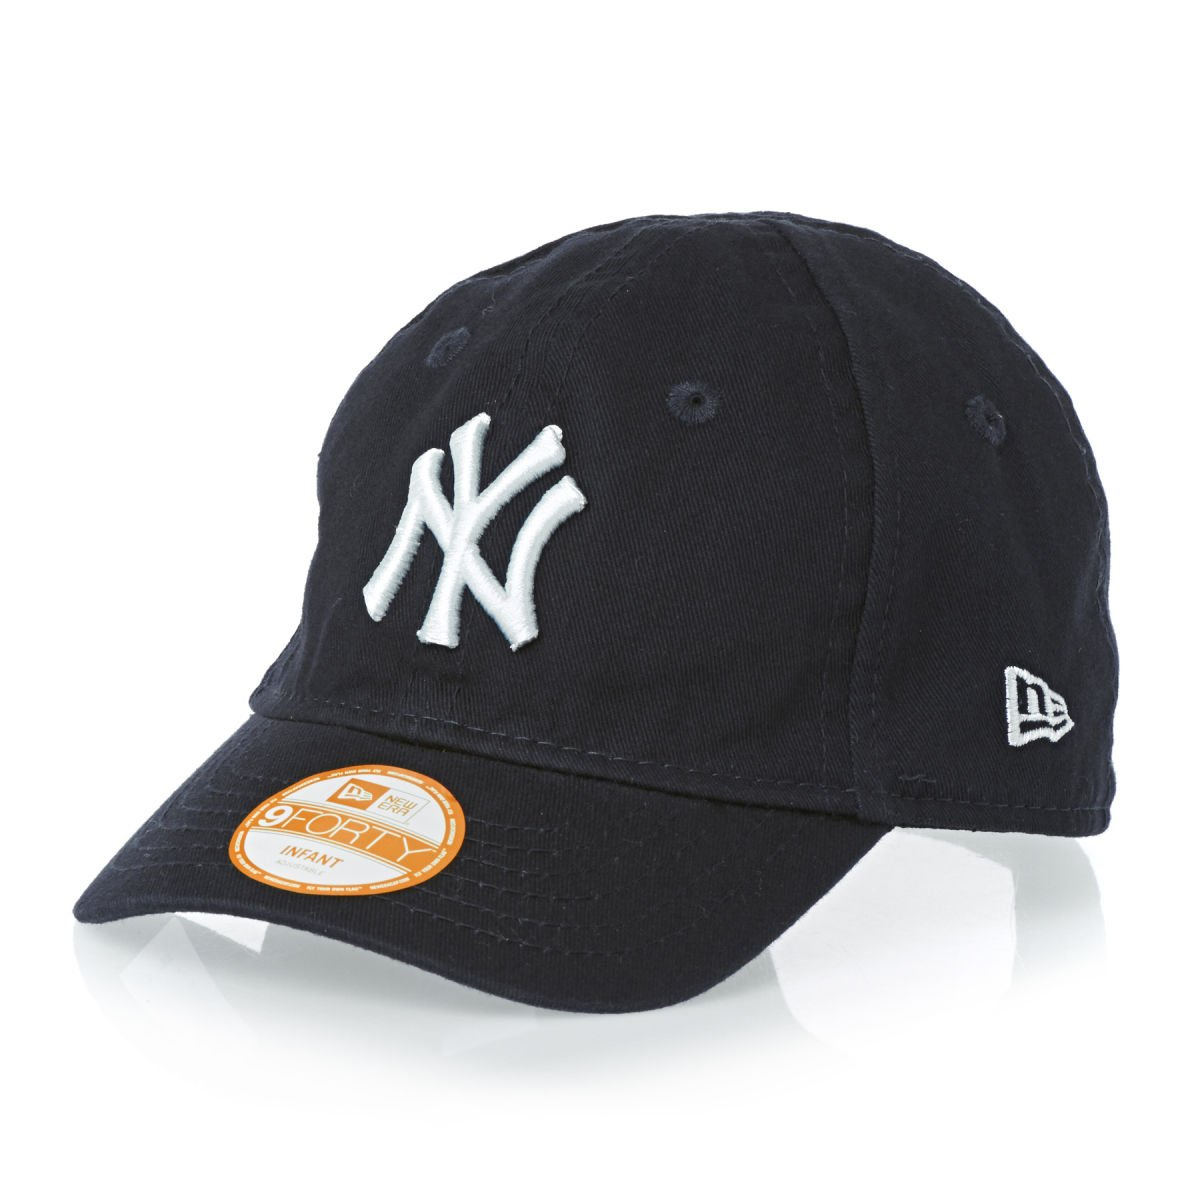 7717c43ed New Era JR My First 9Forty Infants NY Yankees Adjustable Cap: Amazon.co.uk:  Sports & Outdoors